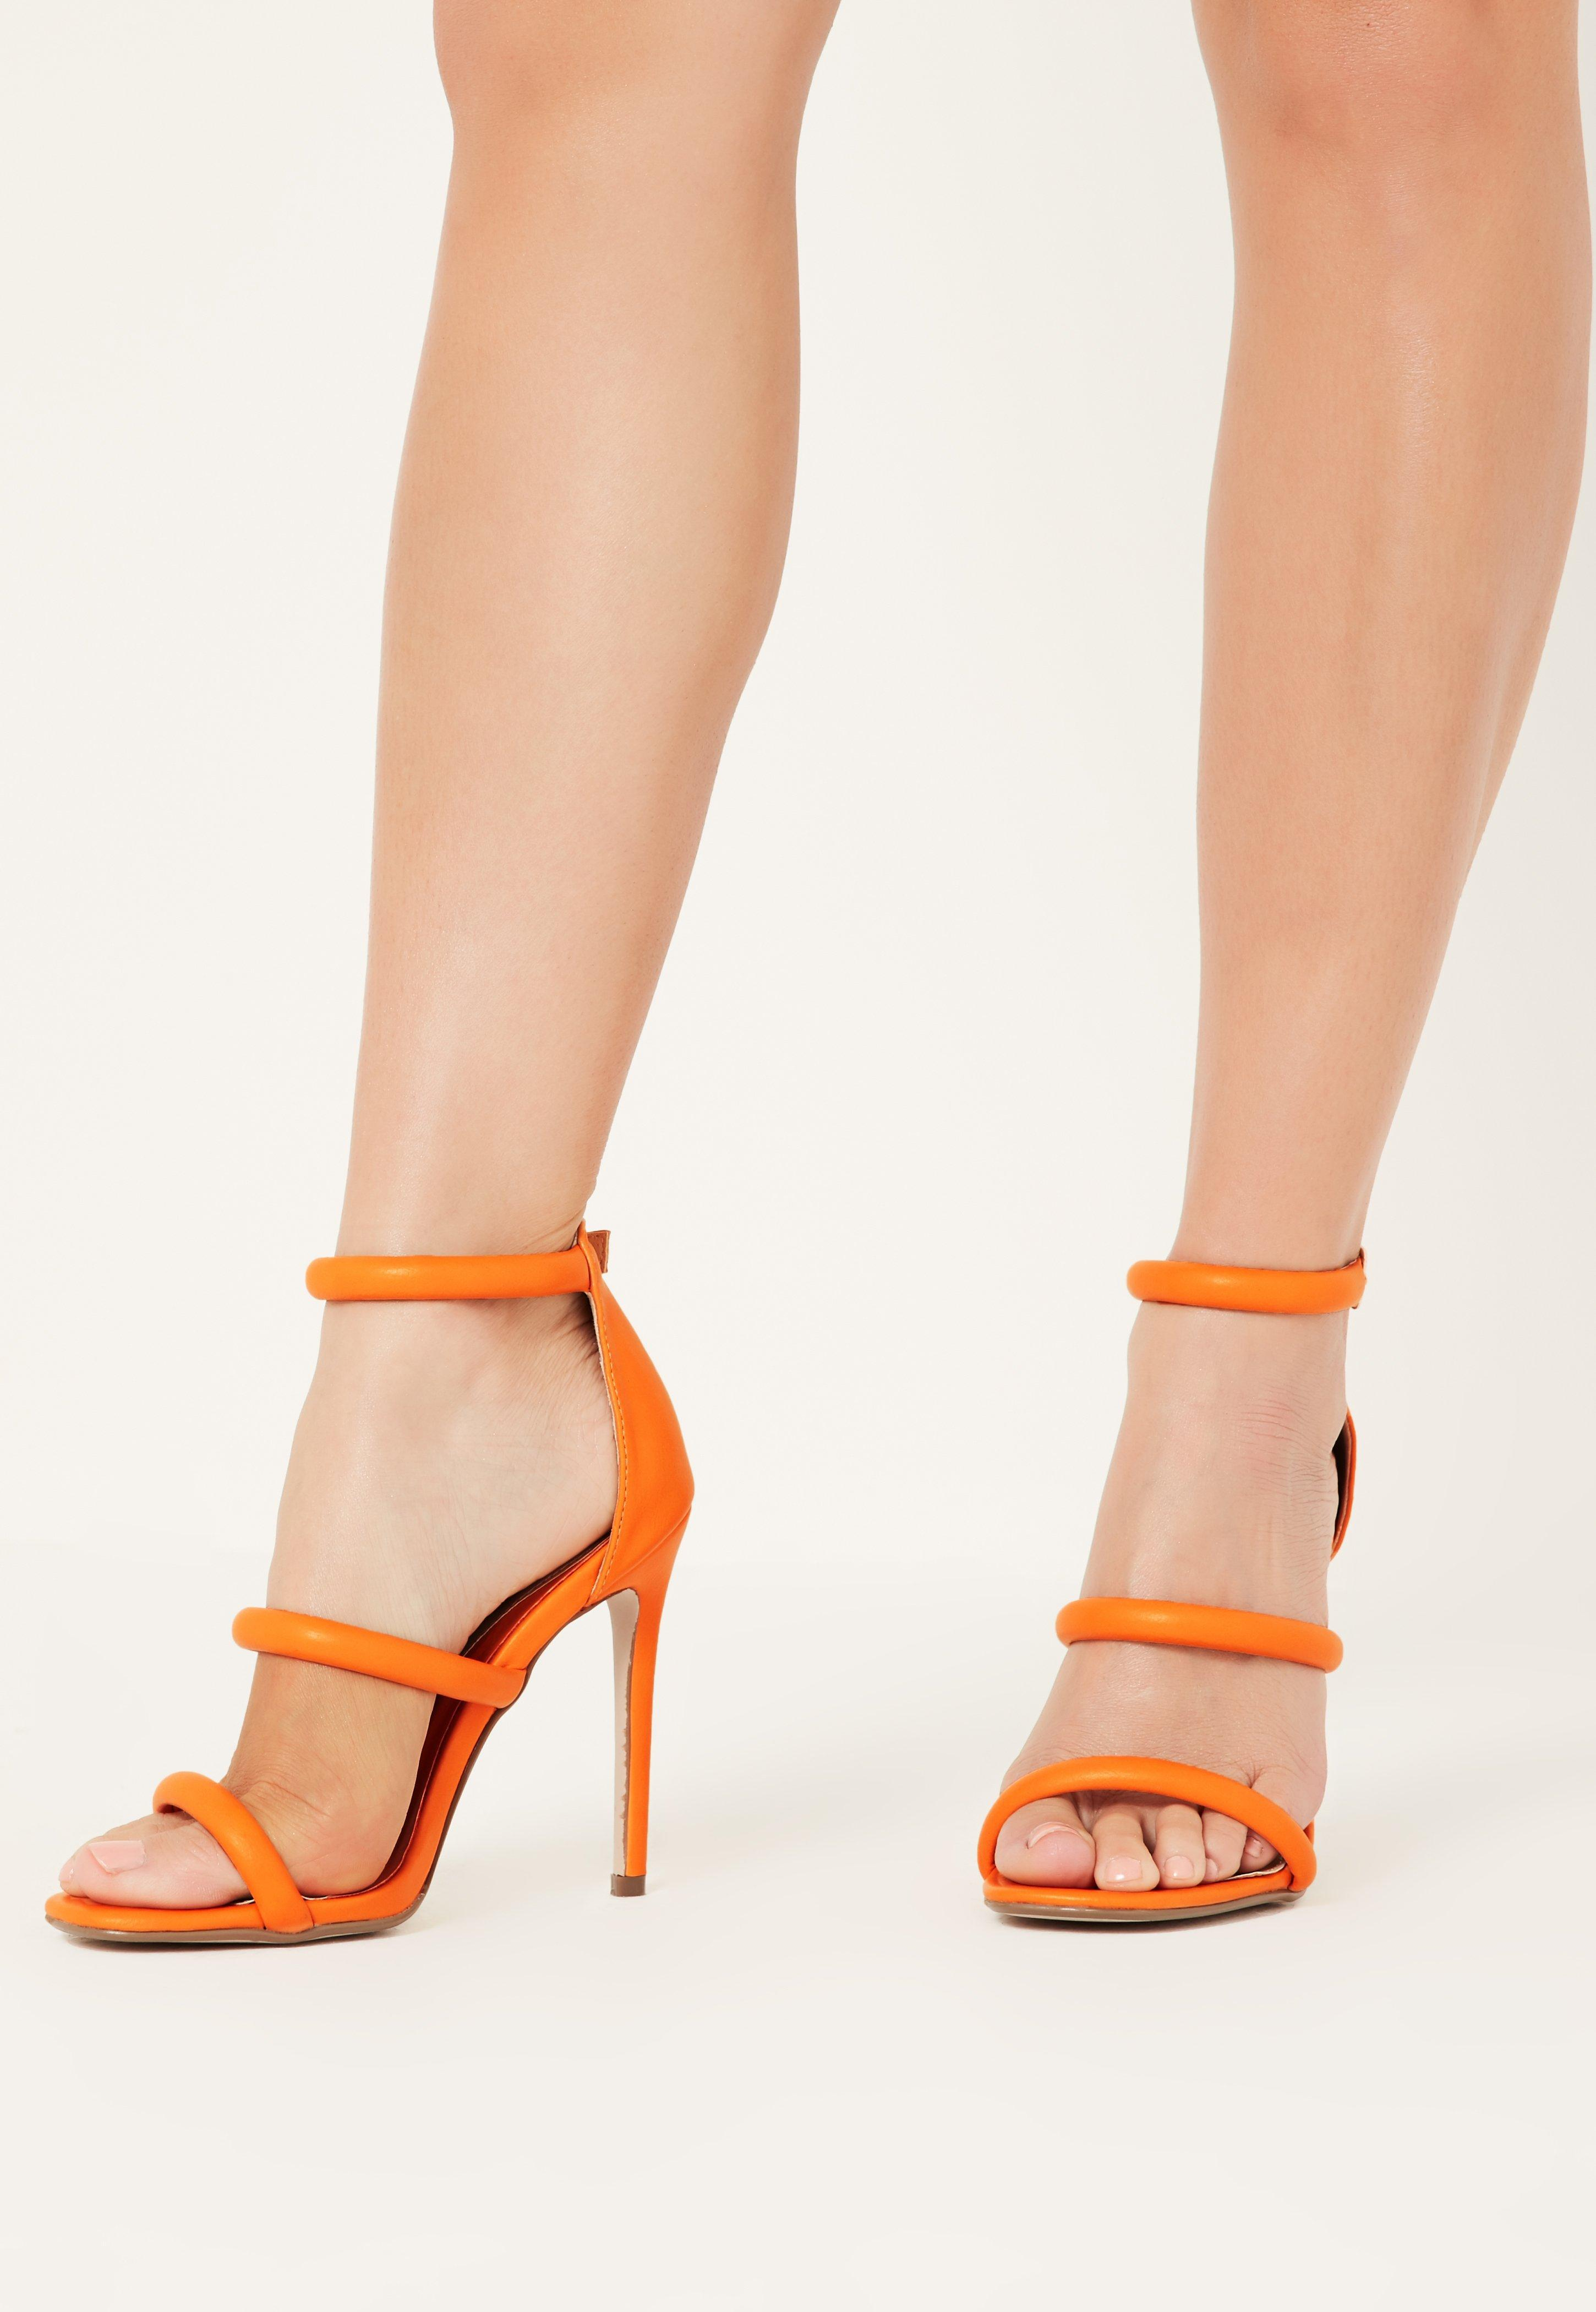 ebb2846a342 Lyst - Missguided Orange Rounded Three Strap Barely There Heels in ...